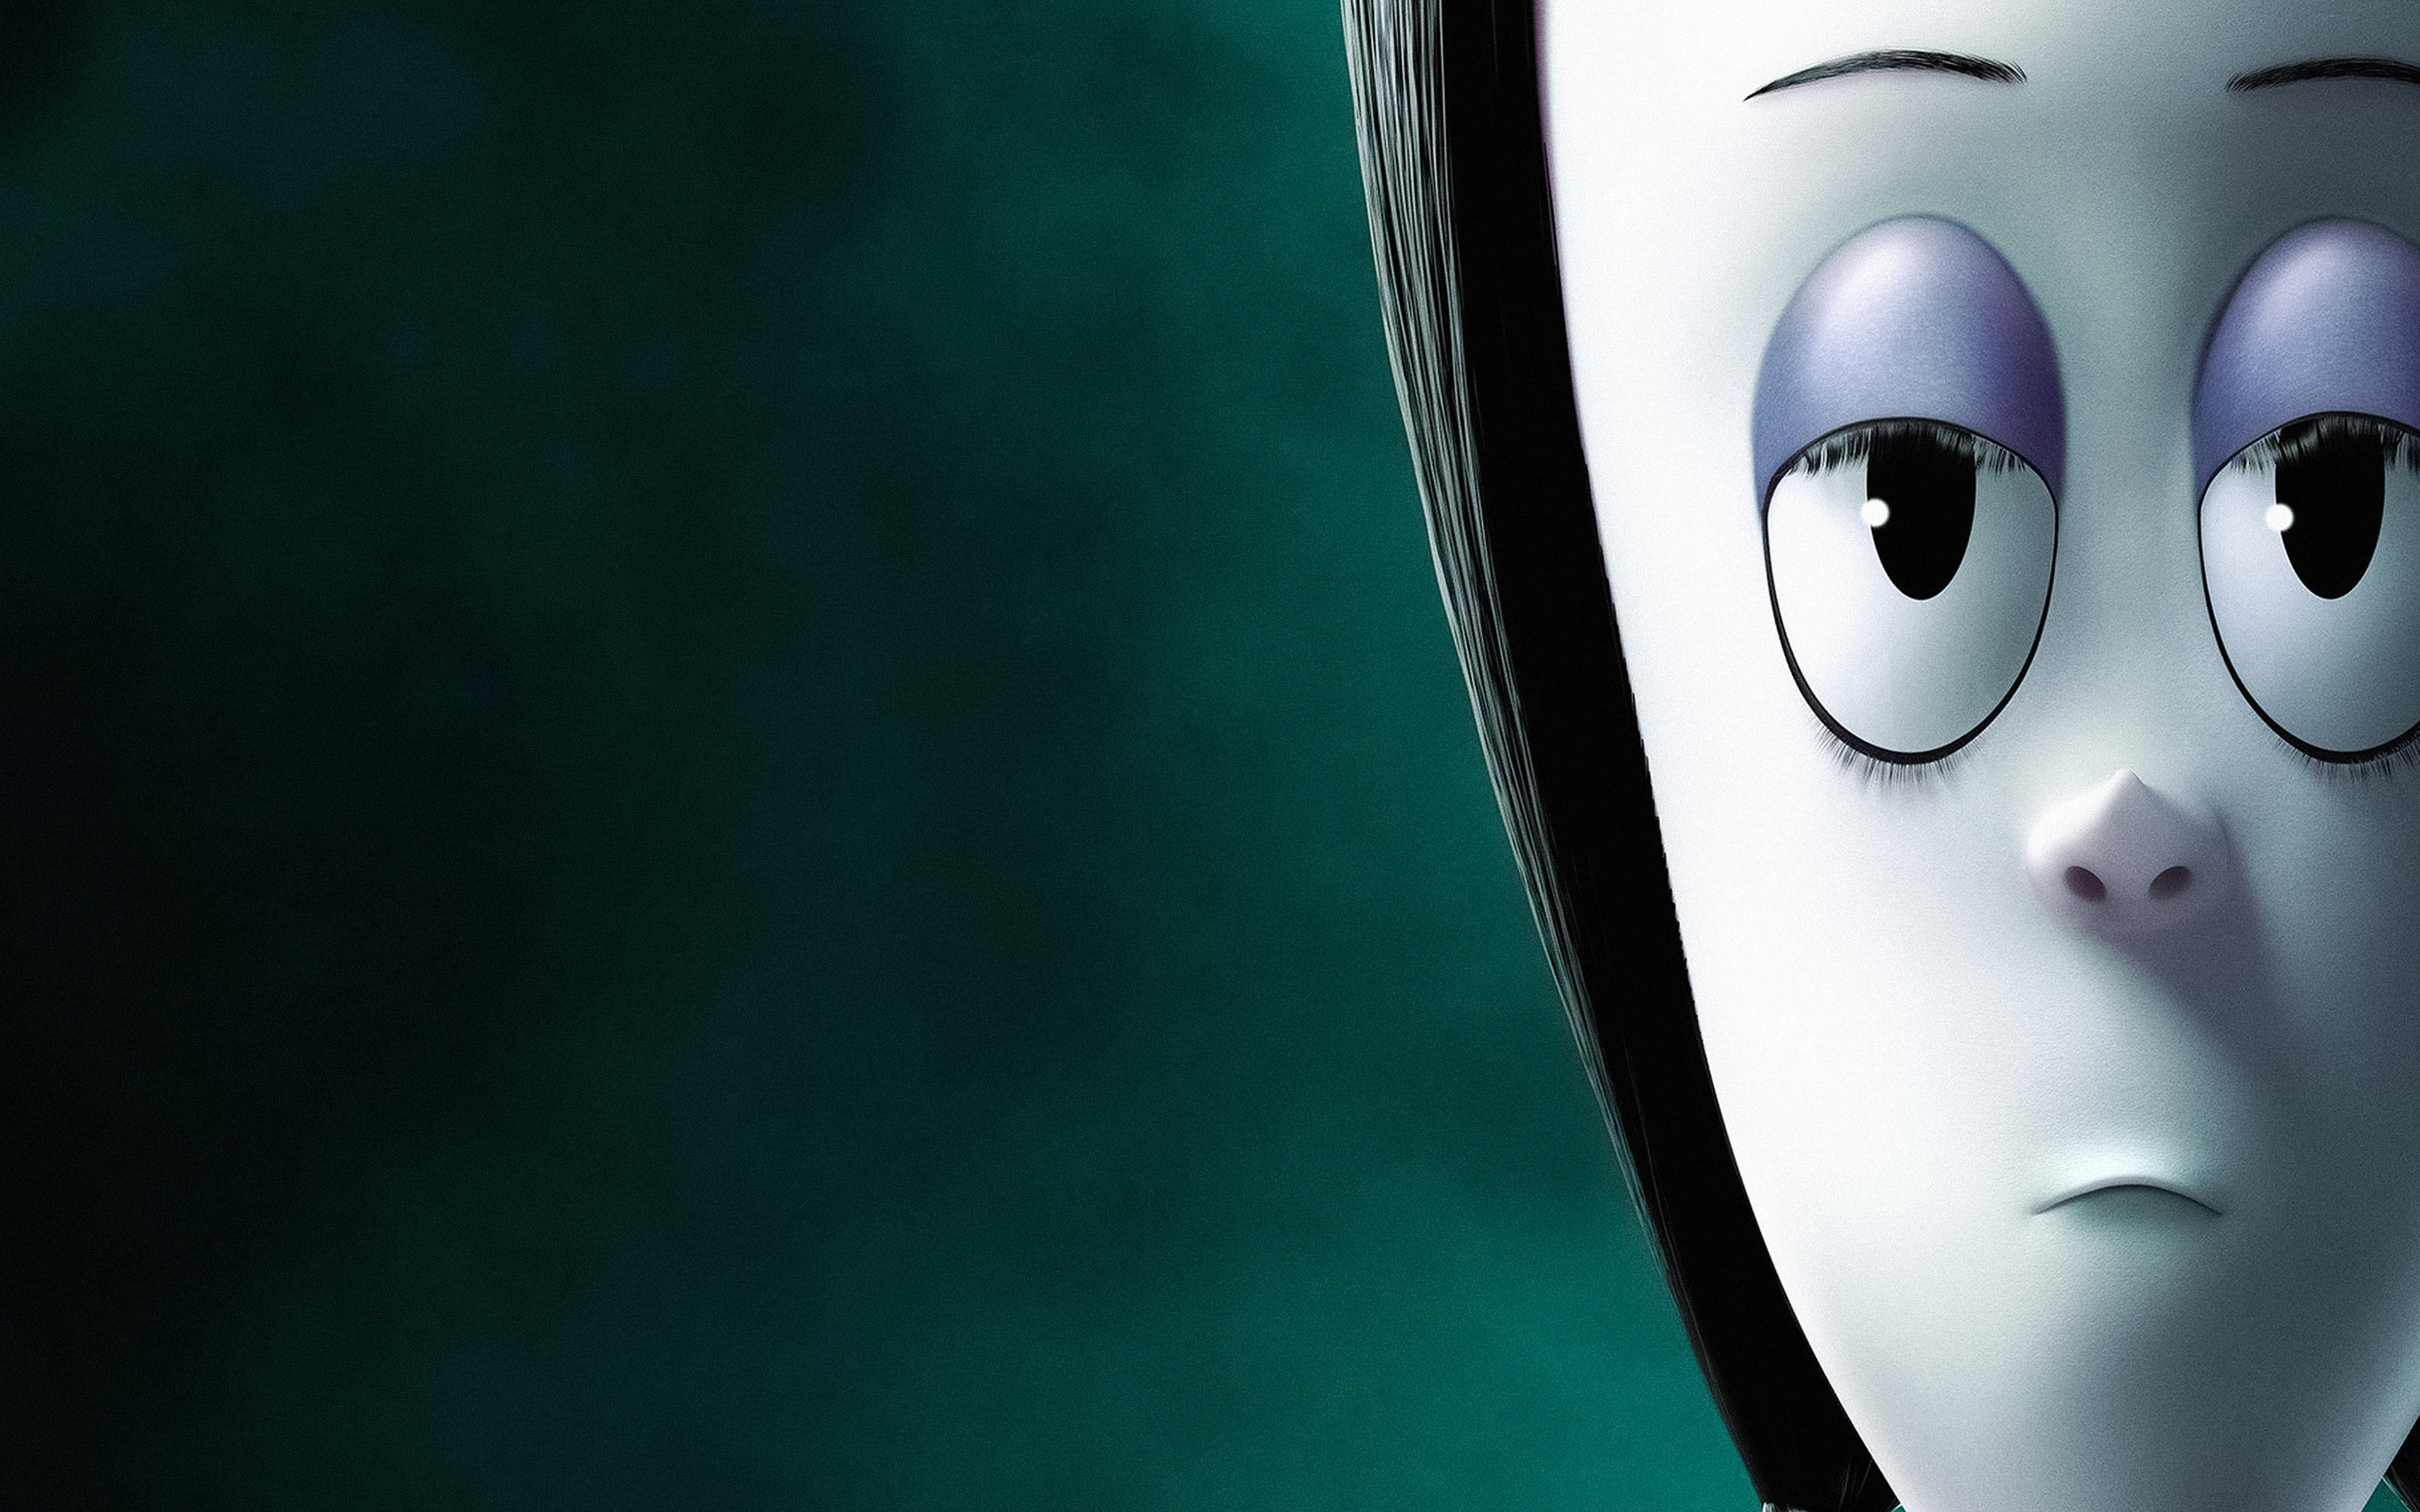 Wallpaper Wednesday from The Addams Family